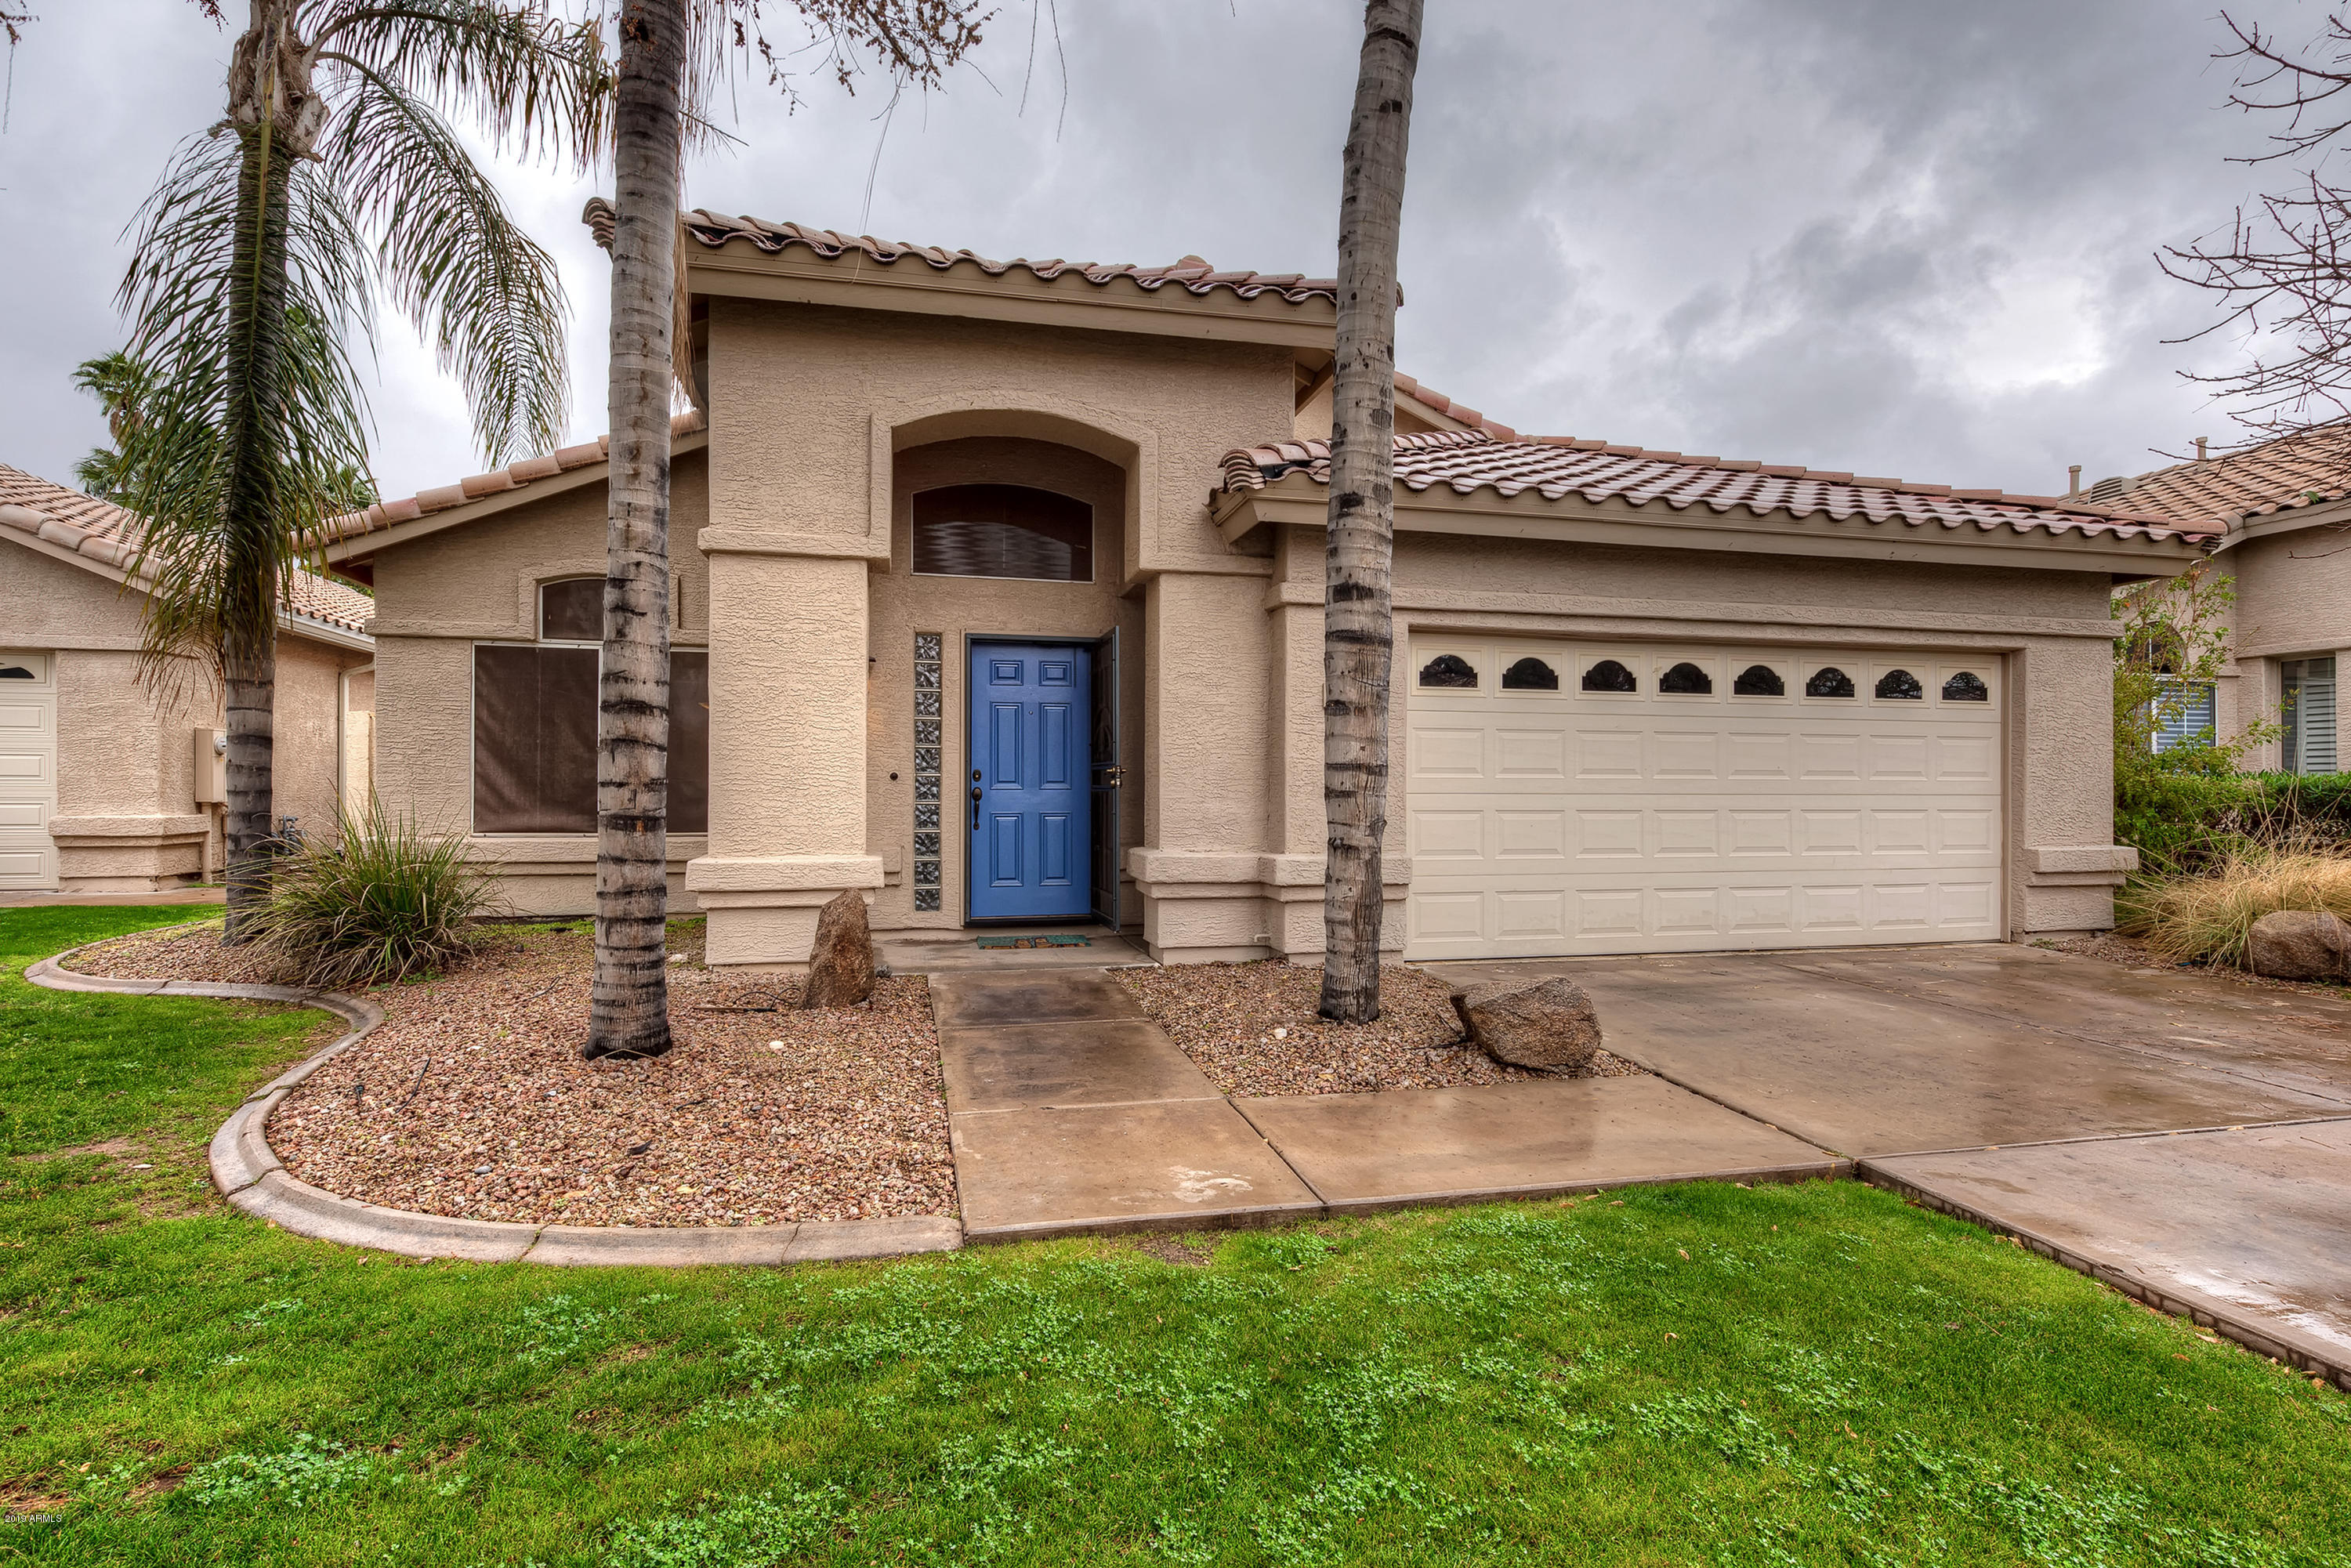 Photo of 4341 N 32ND Way, Phoenix, AZ 85018